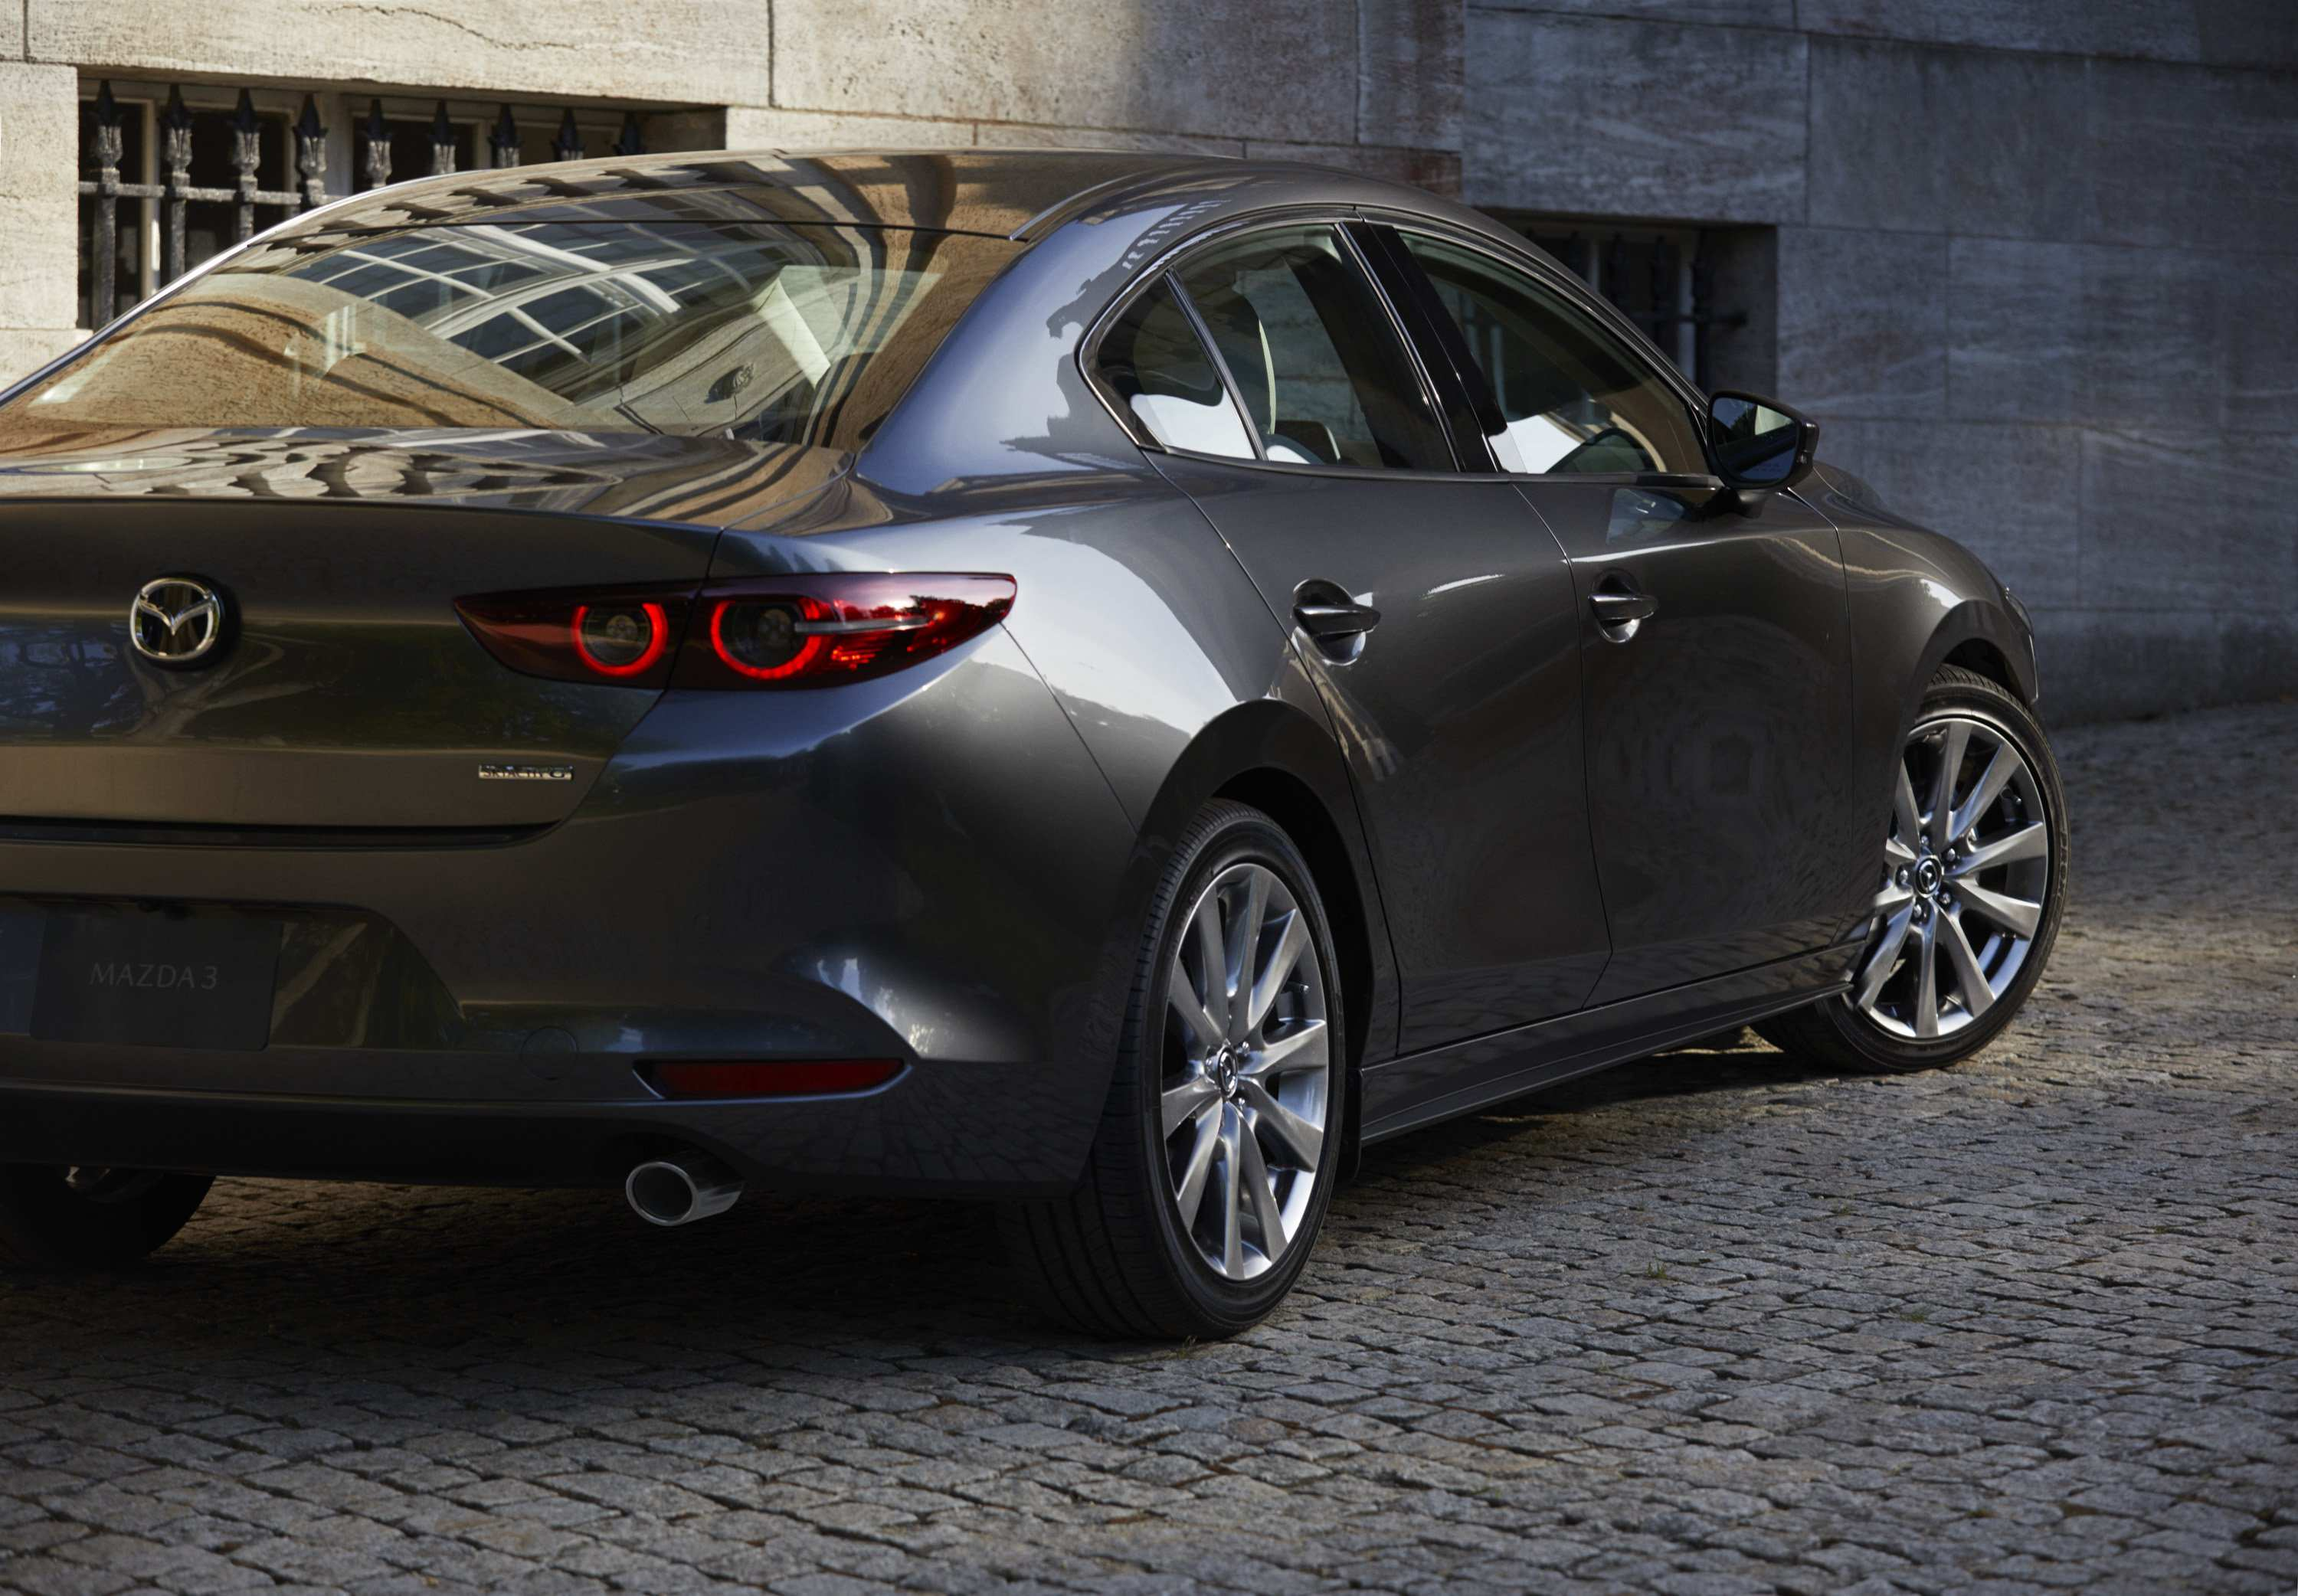 92 Concept of The Mazda 3 2019 Debut Exterior Overview with The Mazda 3 2019 Debut Exterior